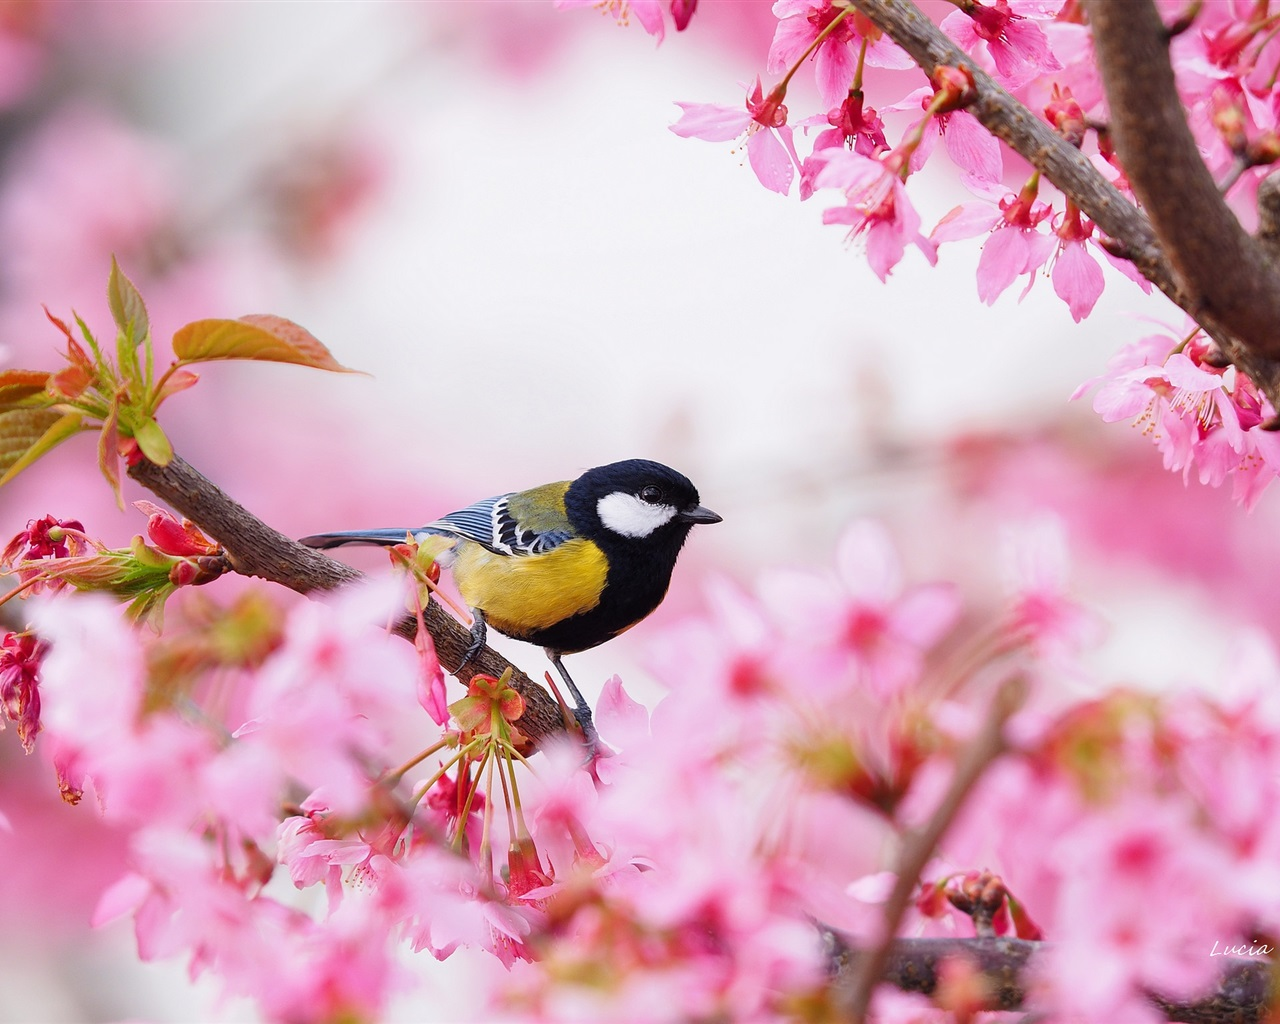 Wallpaper Sakura Pink Flowers Bird Tit Spring